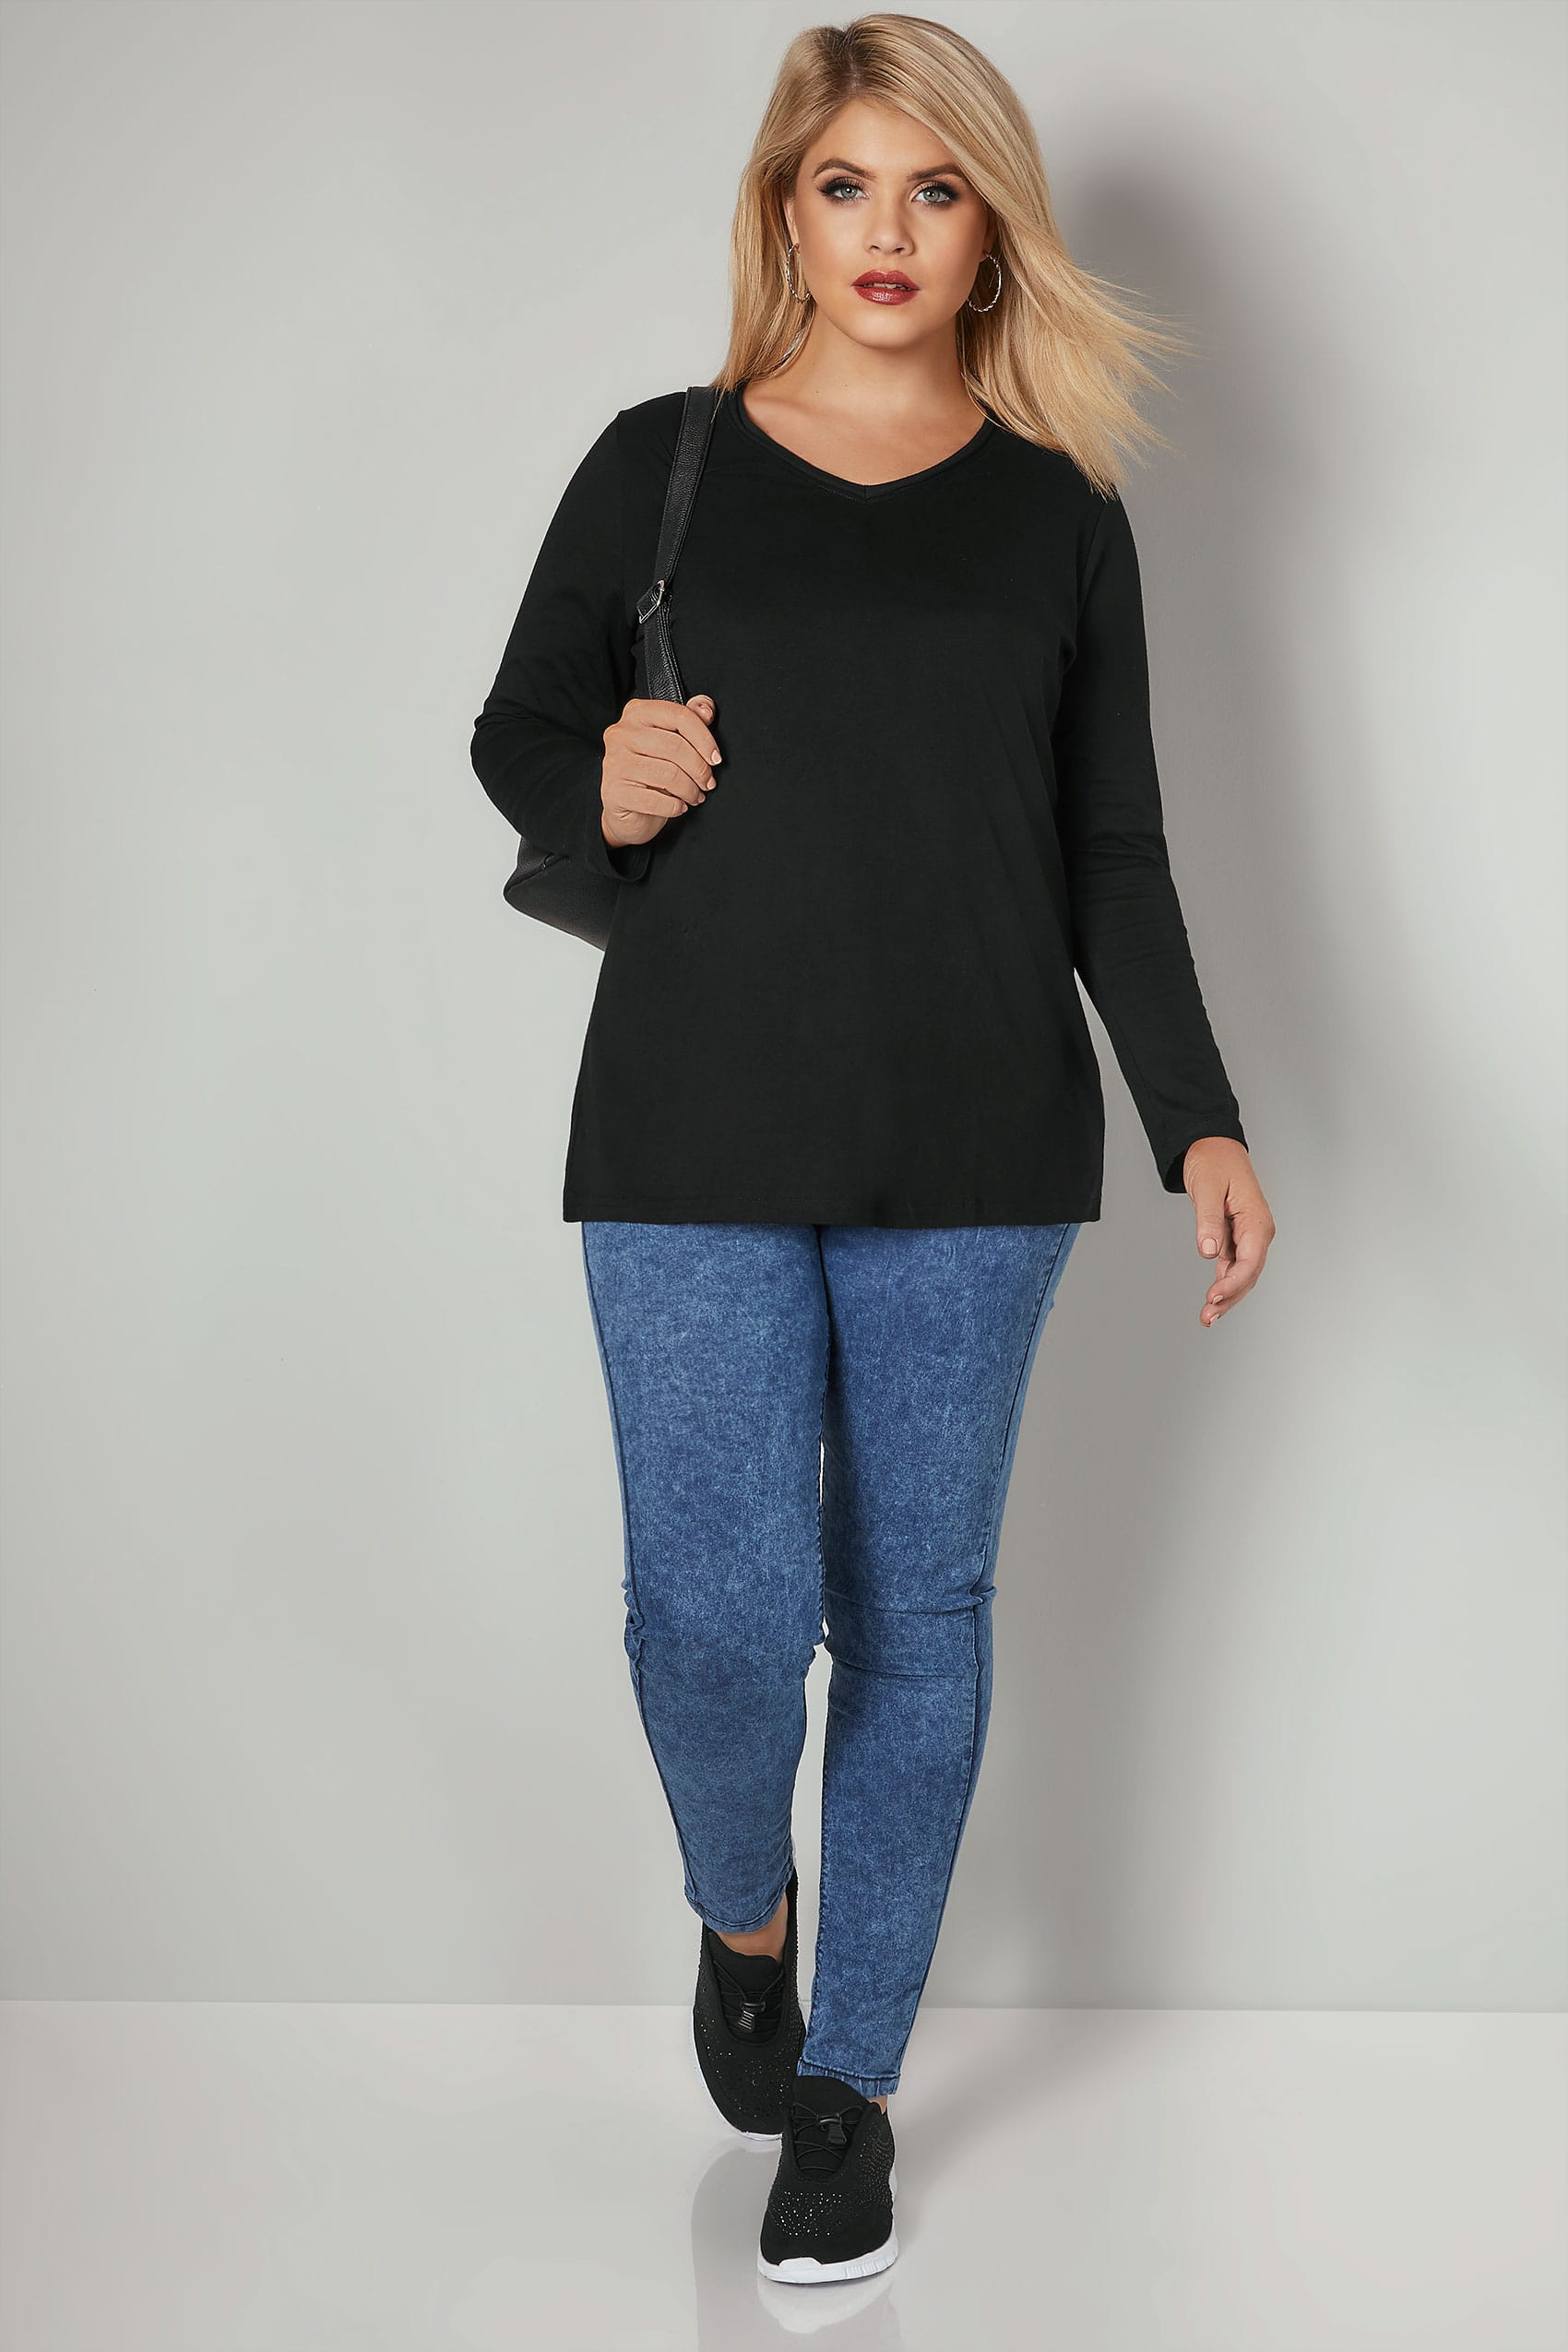 Black Long Sleeved V-Neck Jersey Top, Plus size 16 to 36